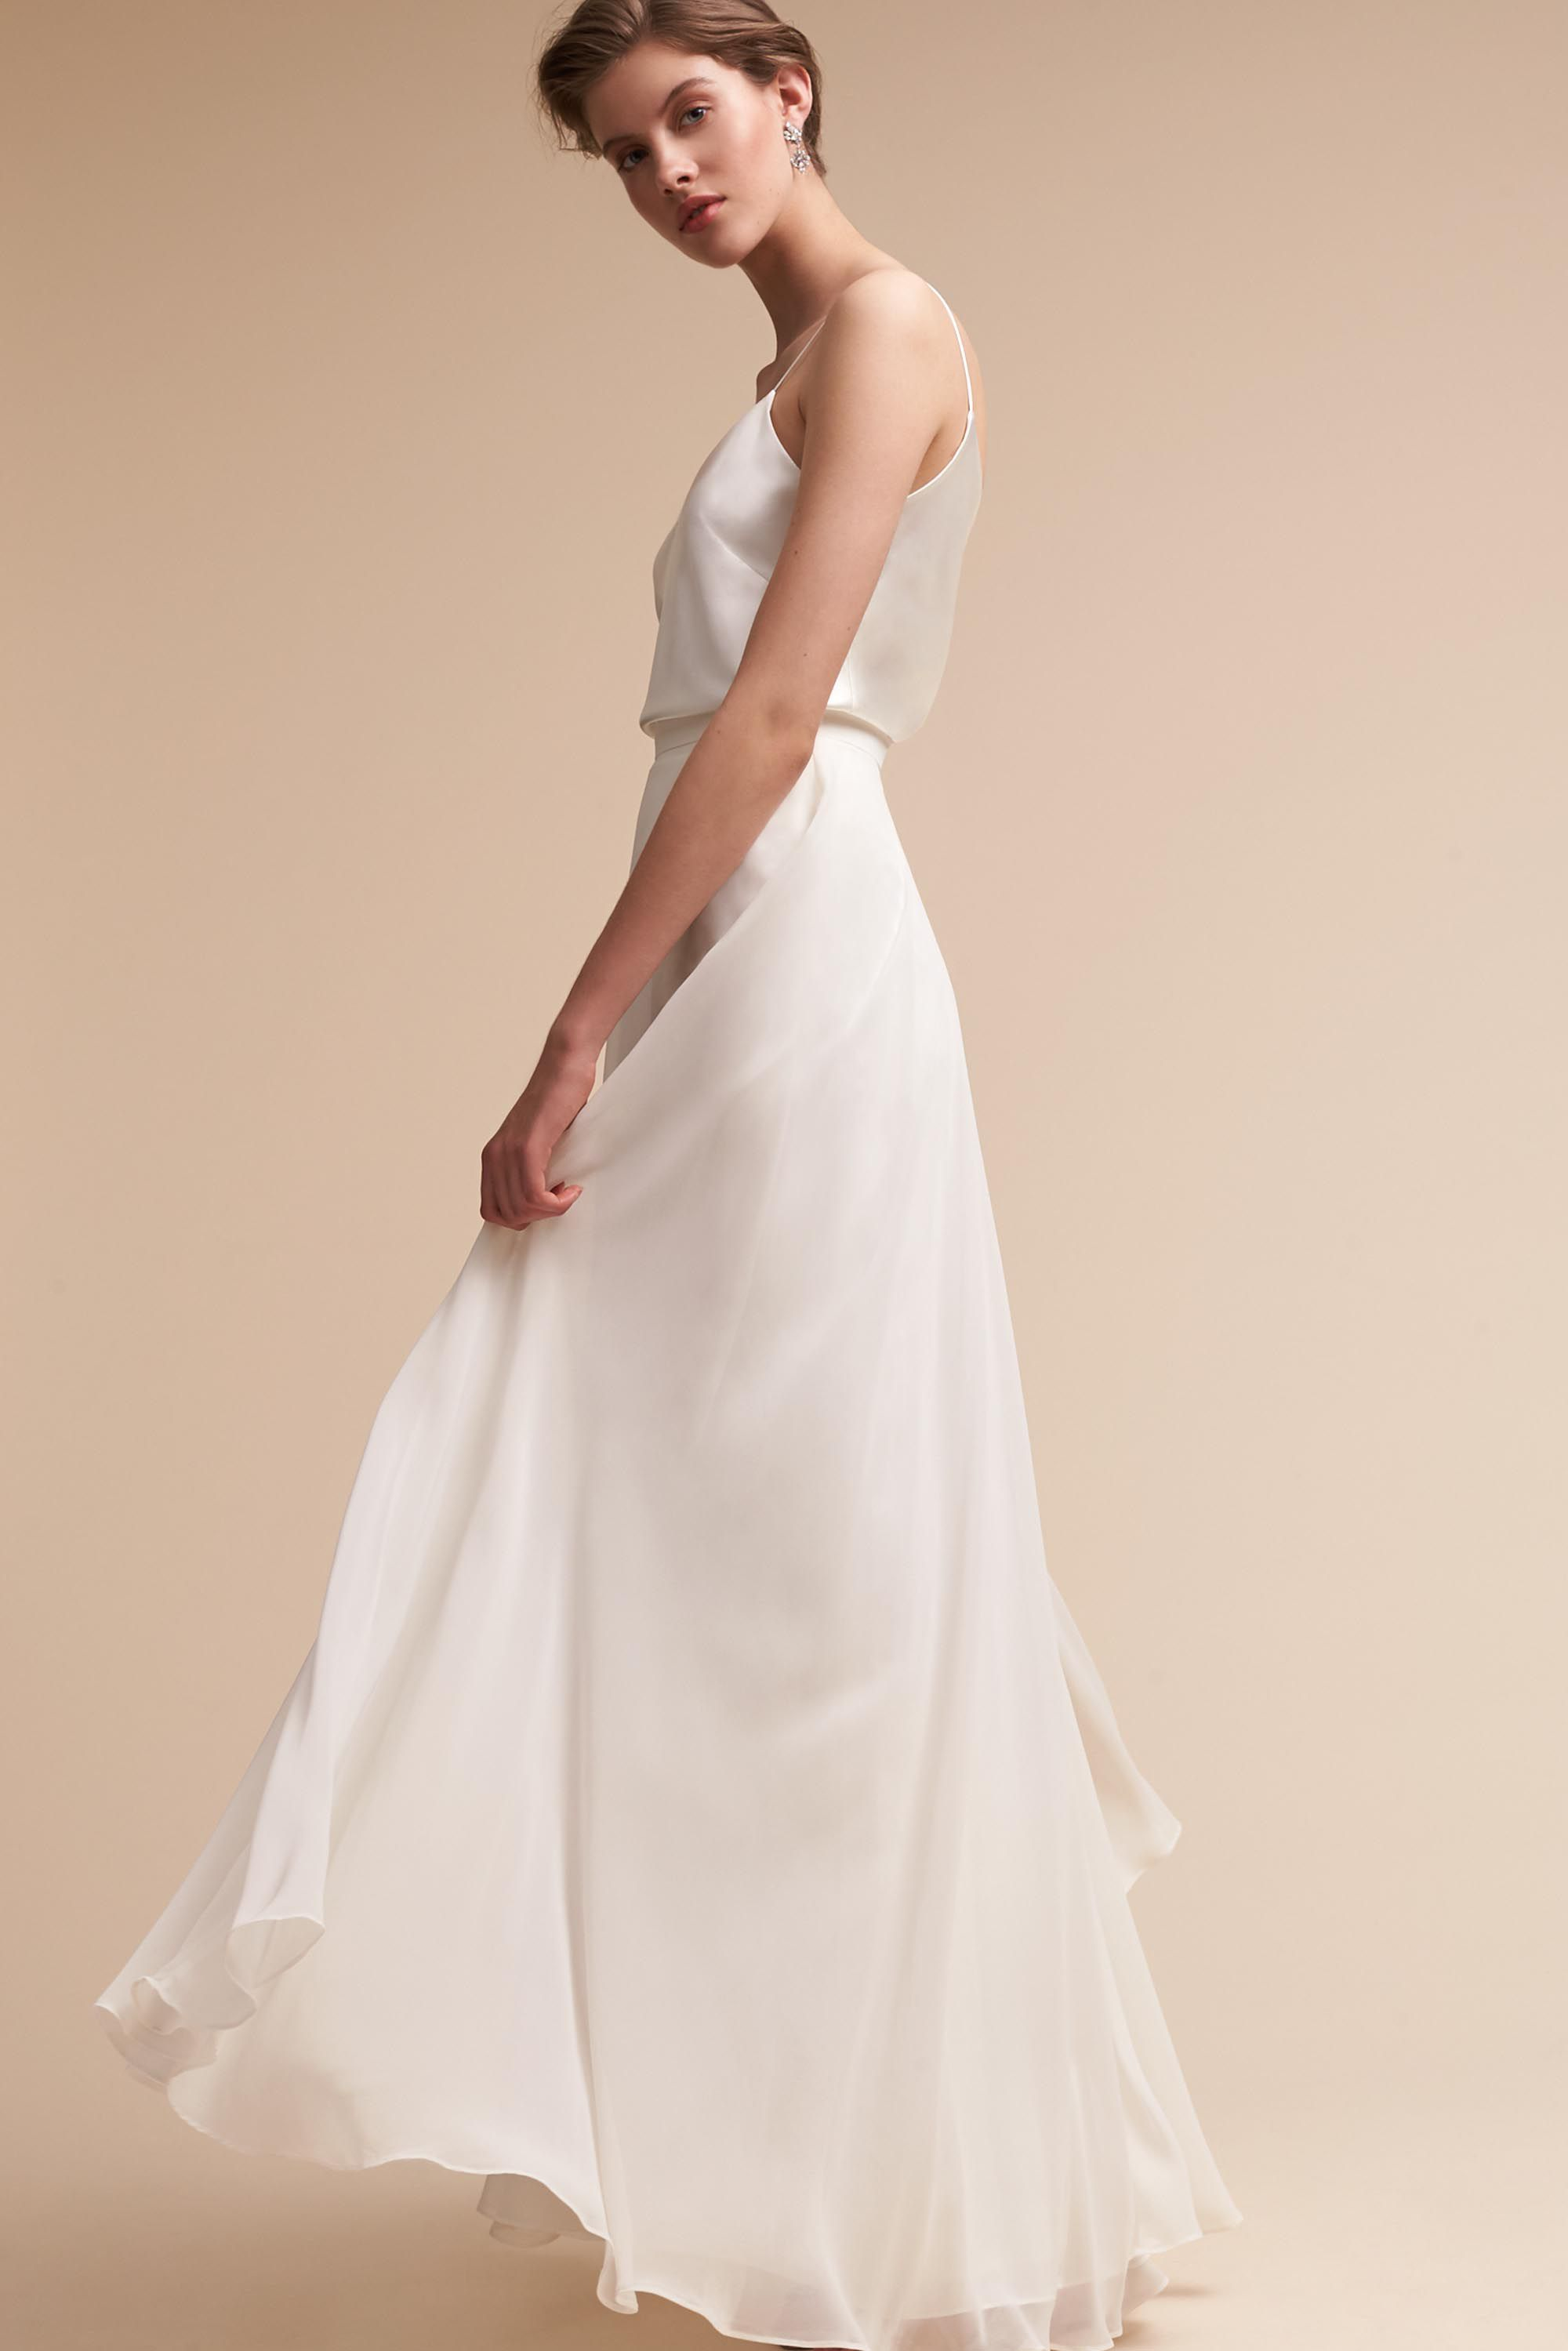 Hampton Skirt Winter White In Bridesmaids Amp Bridal Party